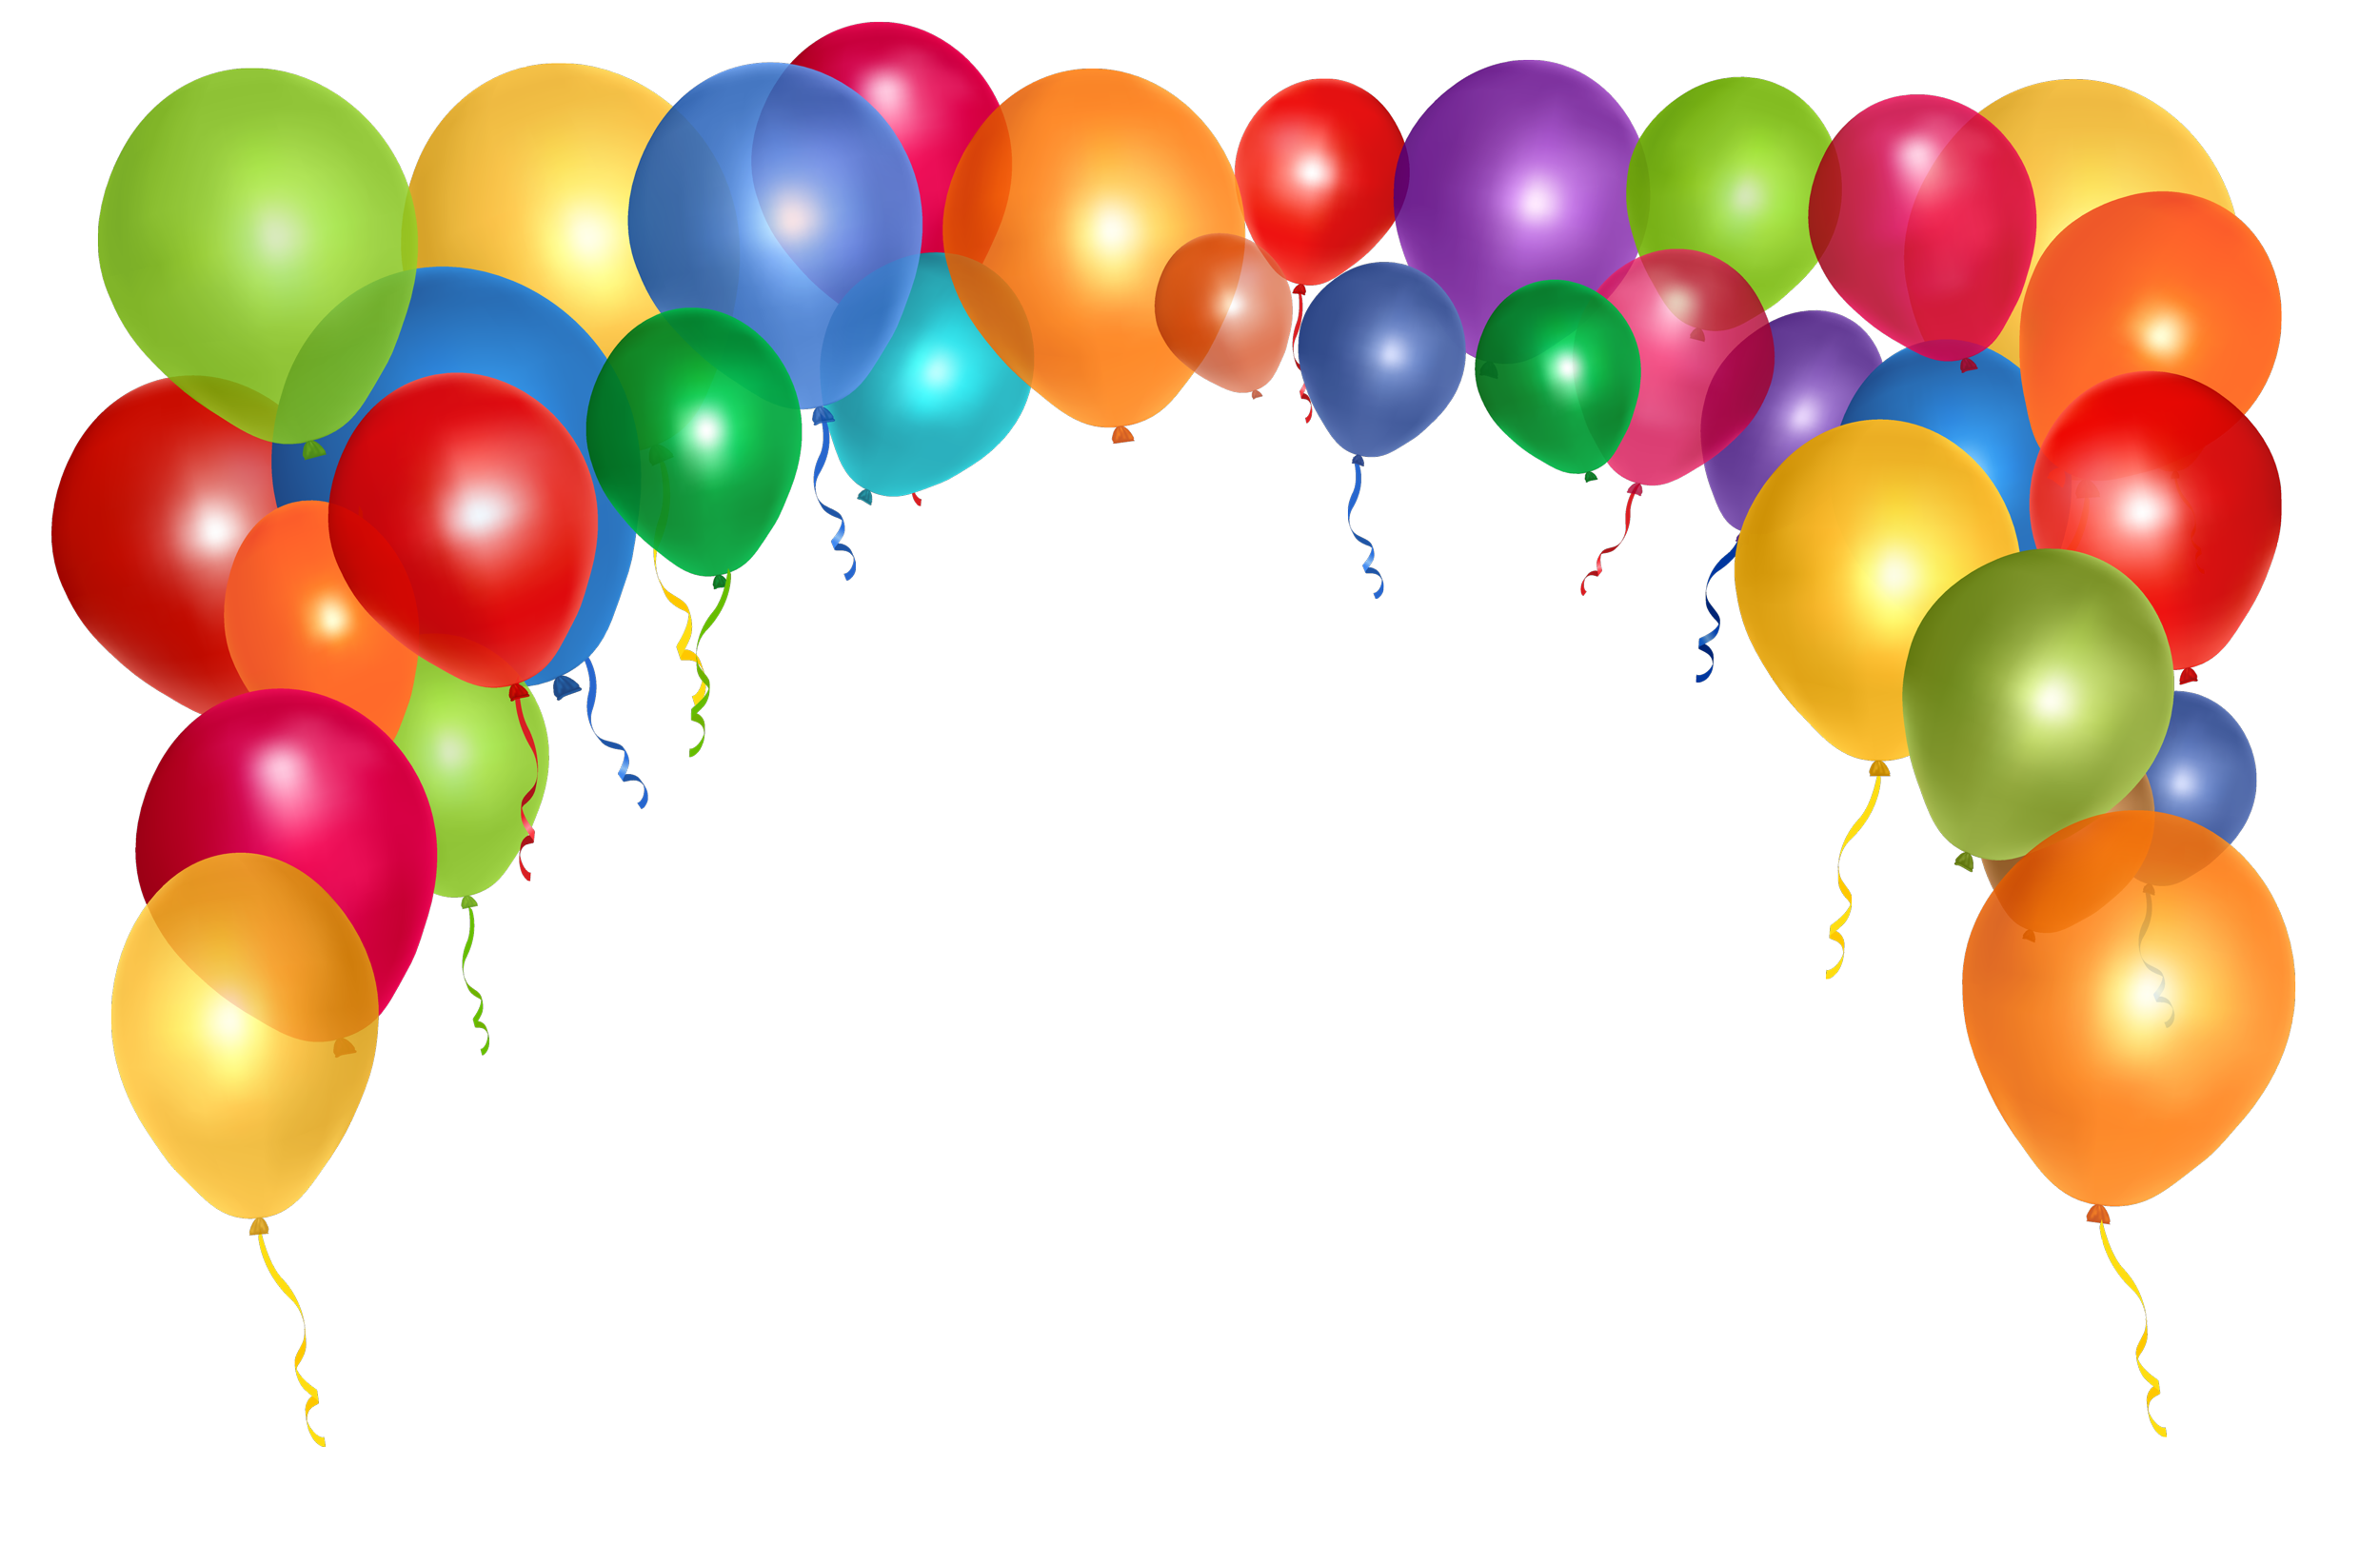 Balloons Png - Balloons PNG Free Download